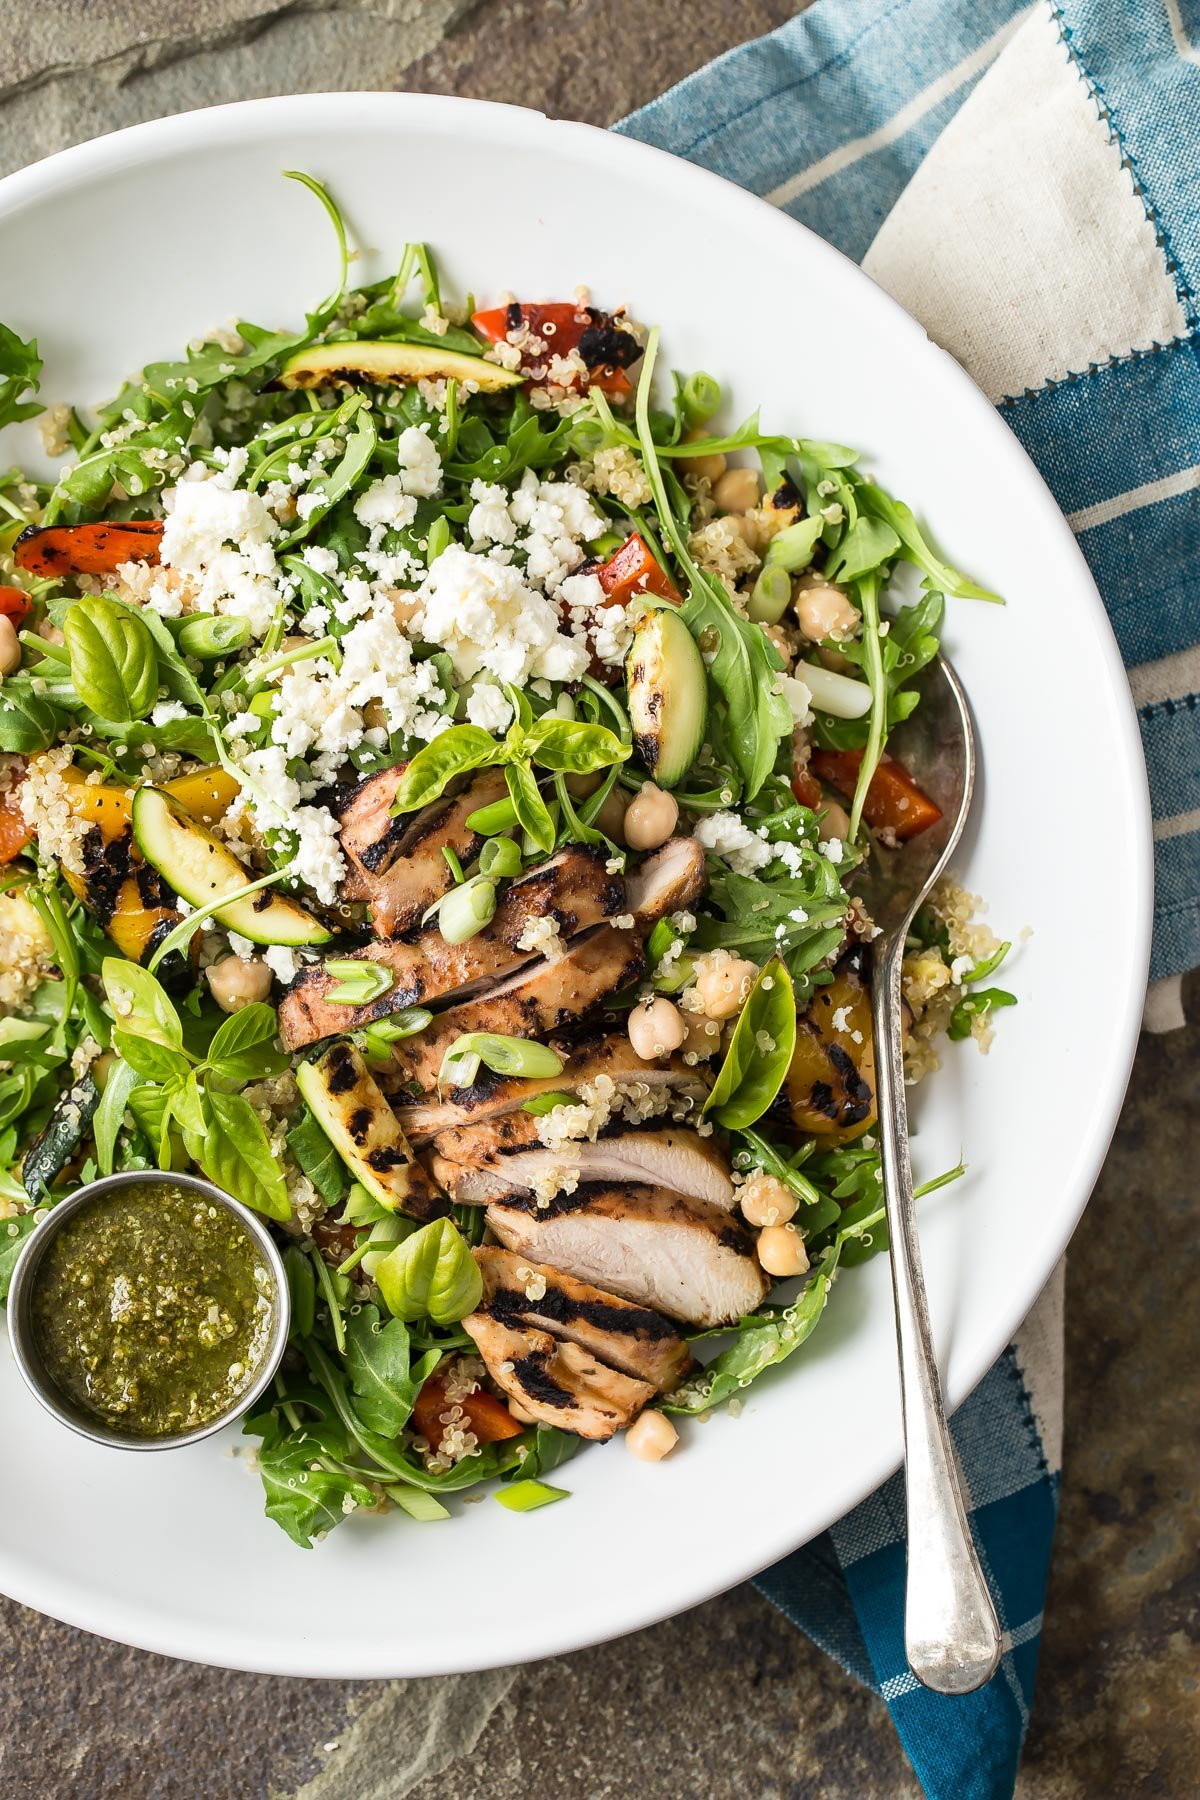 Quinoa Vegetable Salad With Grilled Chicken And Pesto